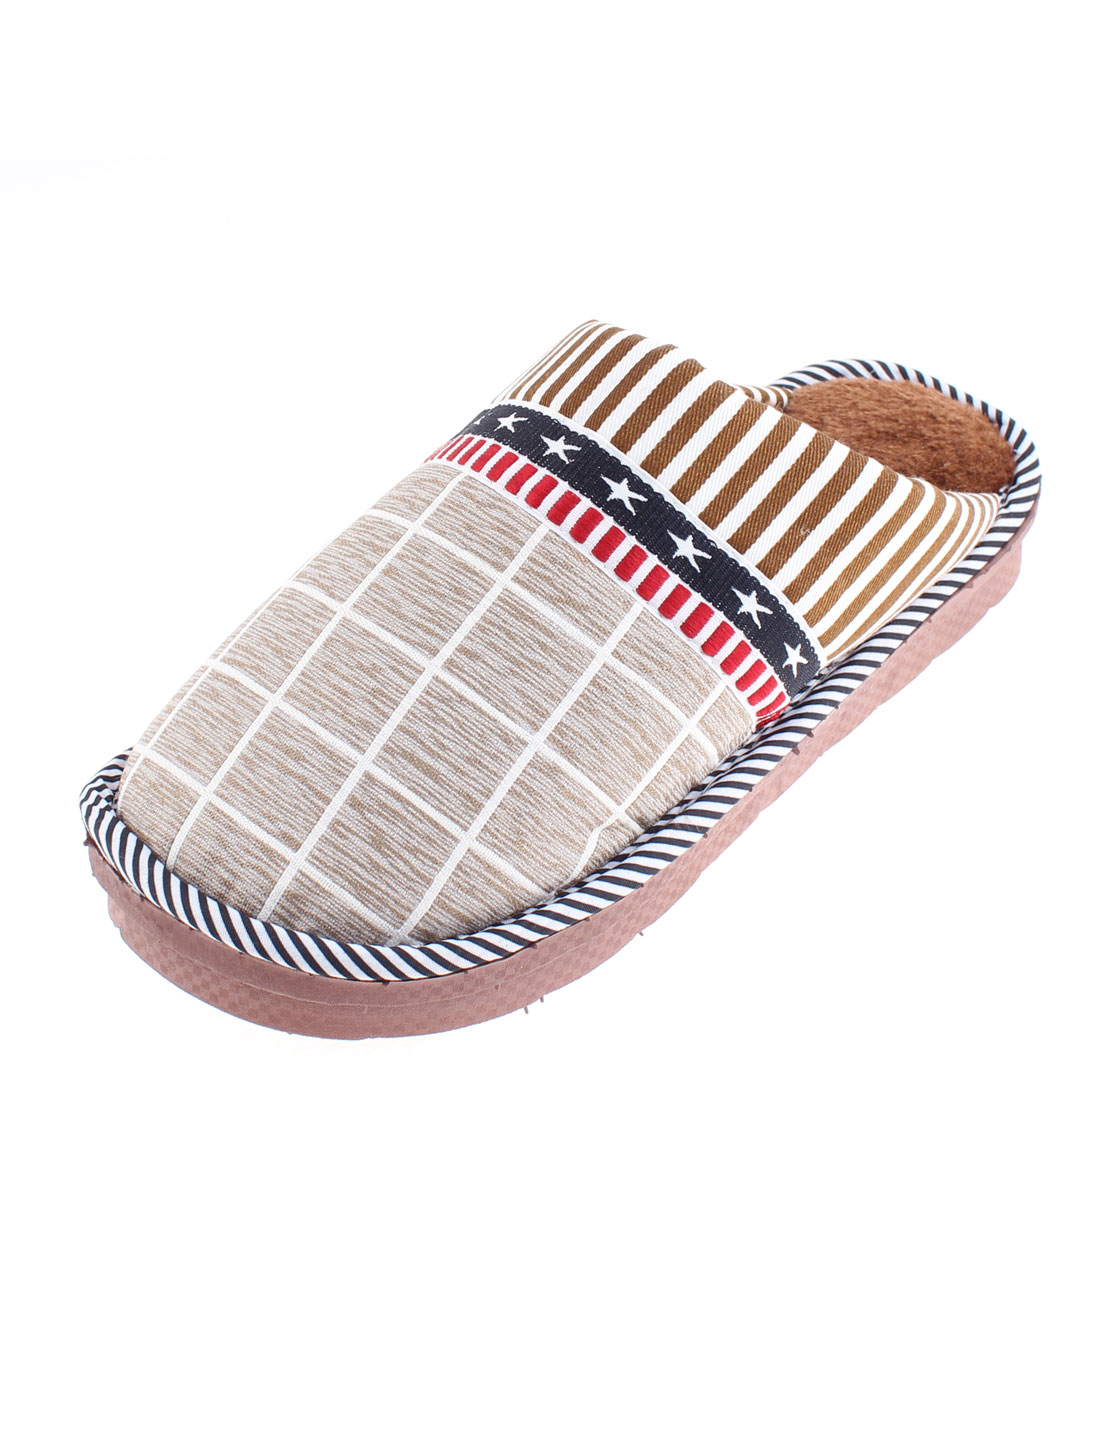 Grid Stripe Pattern Warmer Slippers for Women Chocolate Color US 8.5